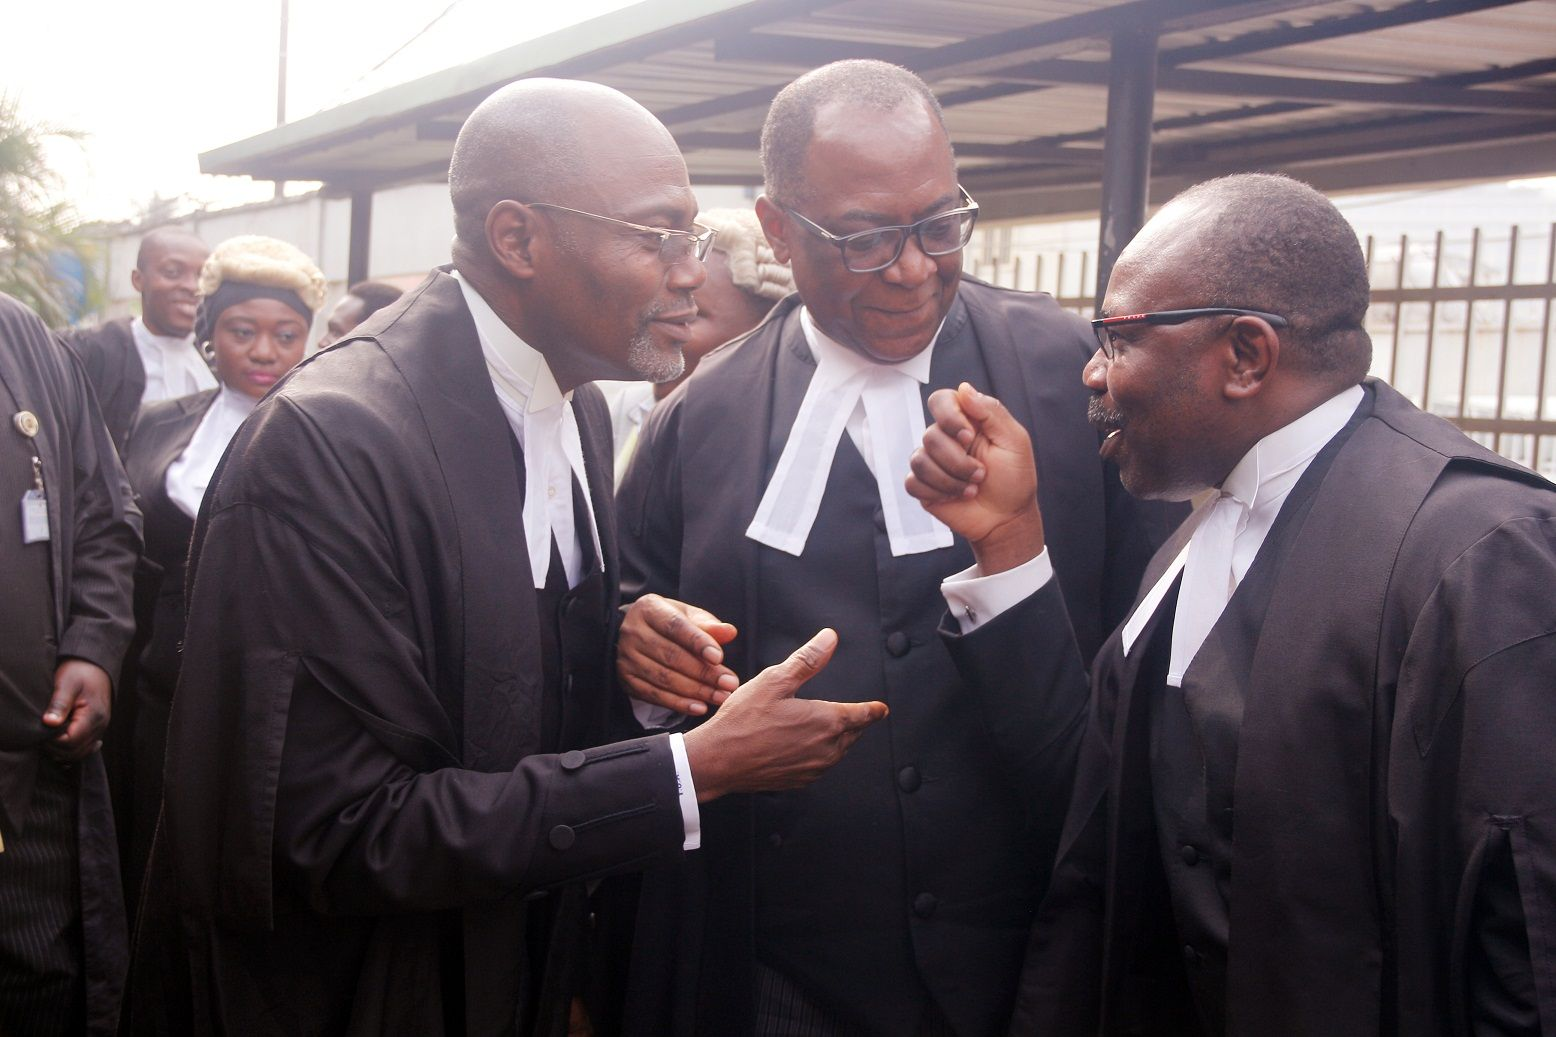 Yusuff Ali (SAN), leading counsel for NCC; Prof. Taiwo Osipitan (SAN) and Dr Muiz Banire earlier today after the hearing MTN vs NCC case held at Federal High Court in Ikoyi, Lagos Photo: Kehinde Shonola/Technology Times